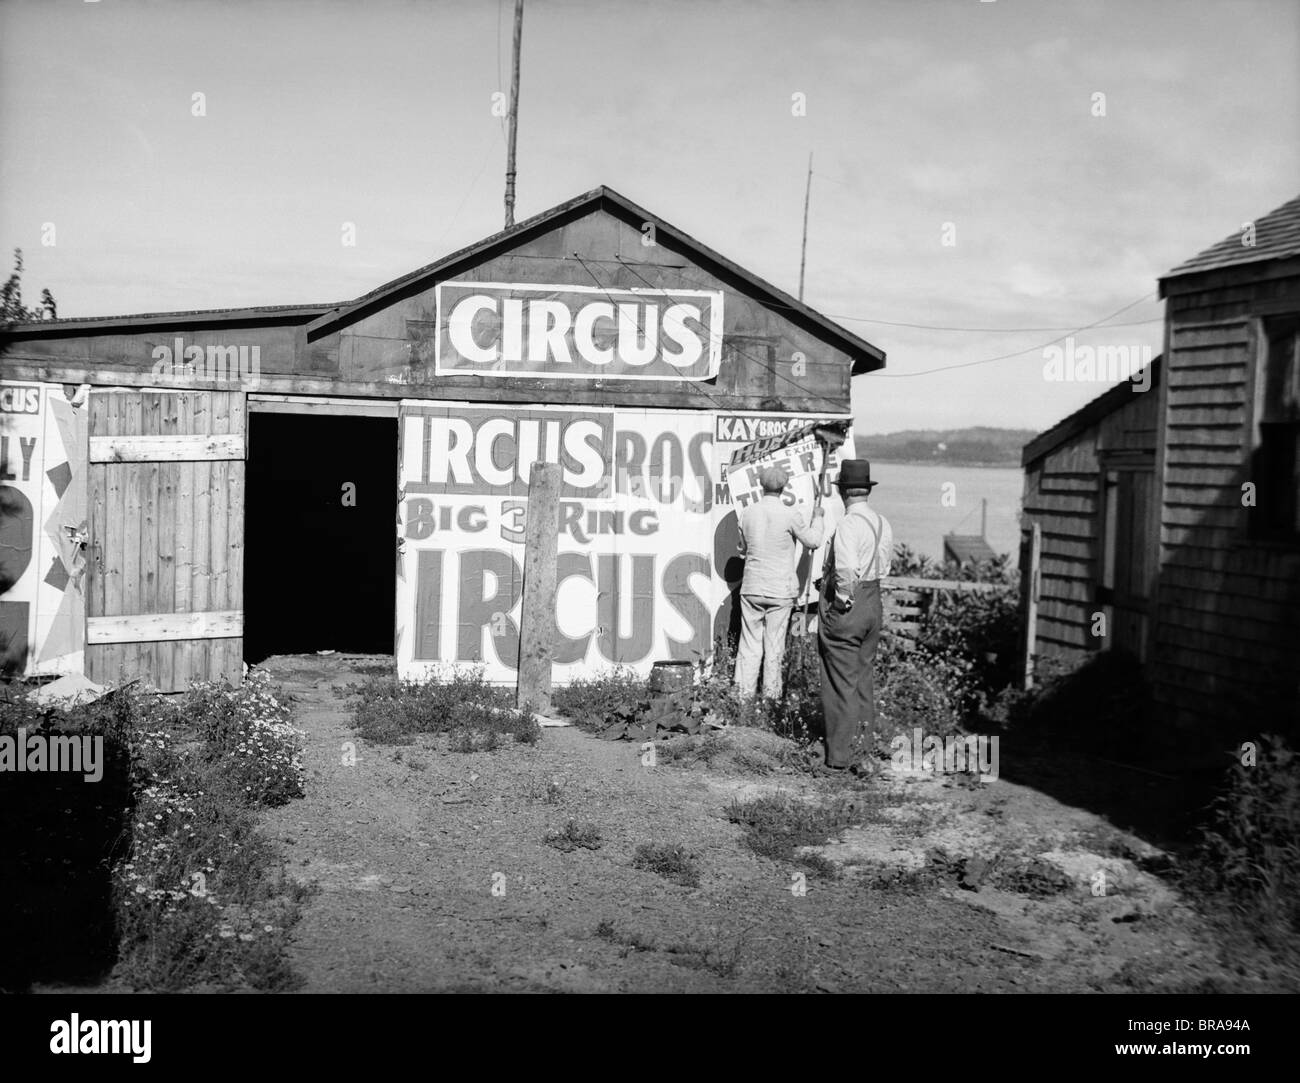 1920s BILL POSTERS STICKING SIGNS ON THE SIDE OF A BARN ADVERTISING A TRAVELING CIRCUS - Stock Image